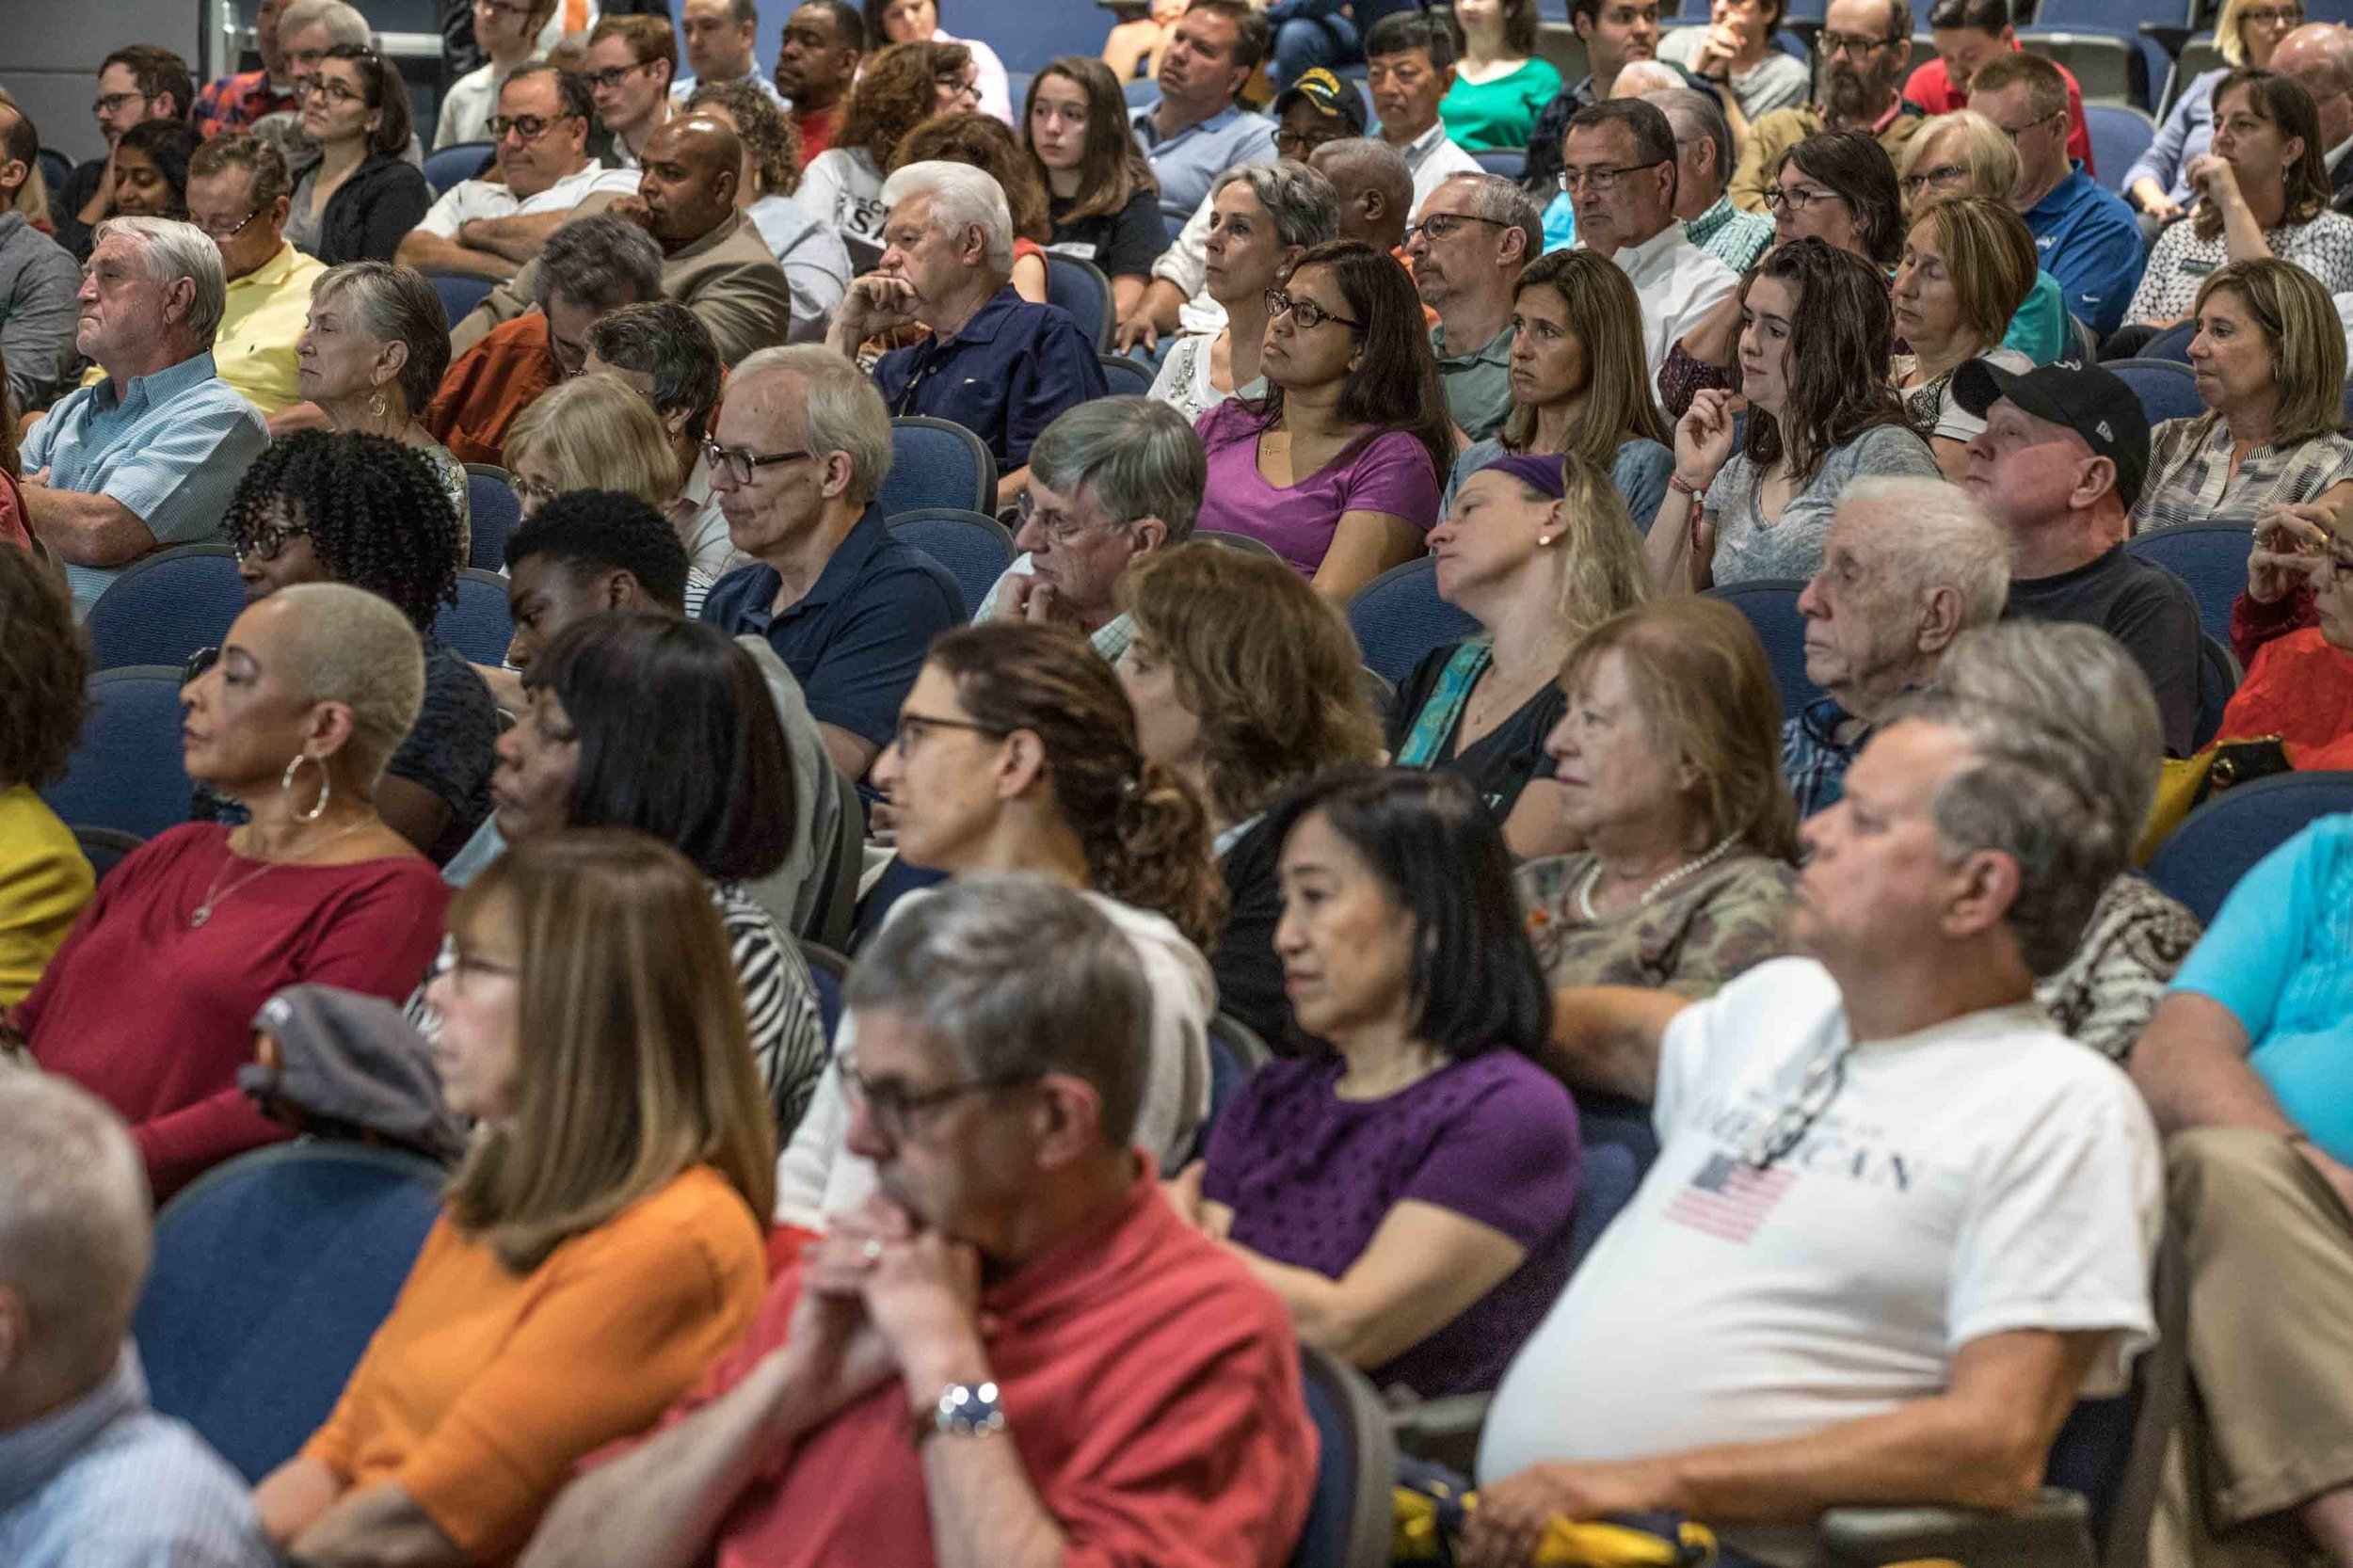 Guest listen as Rep. Lucy McBath, D-Ga., speaks during a town hall at Dunwoody High School on Saturday, June 8, 2019 in Dunwoody, Ga. Branden Camp for AJC